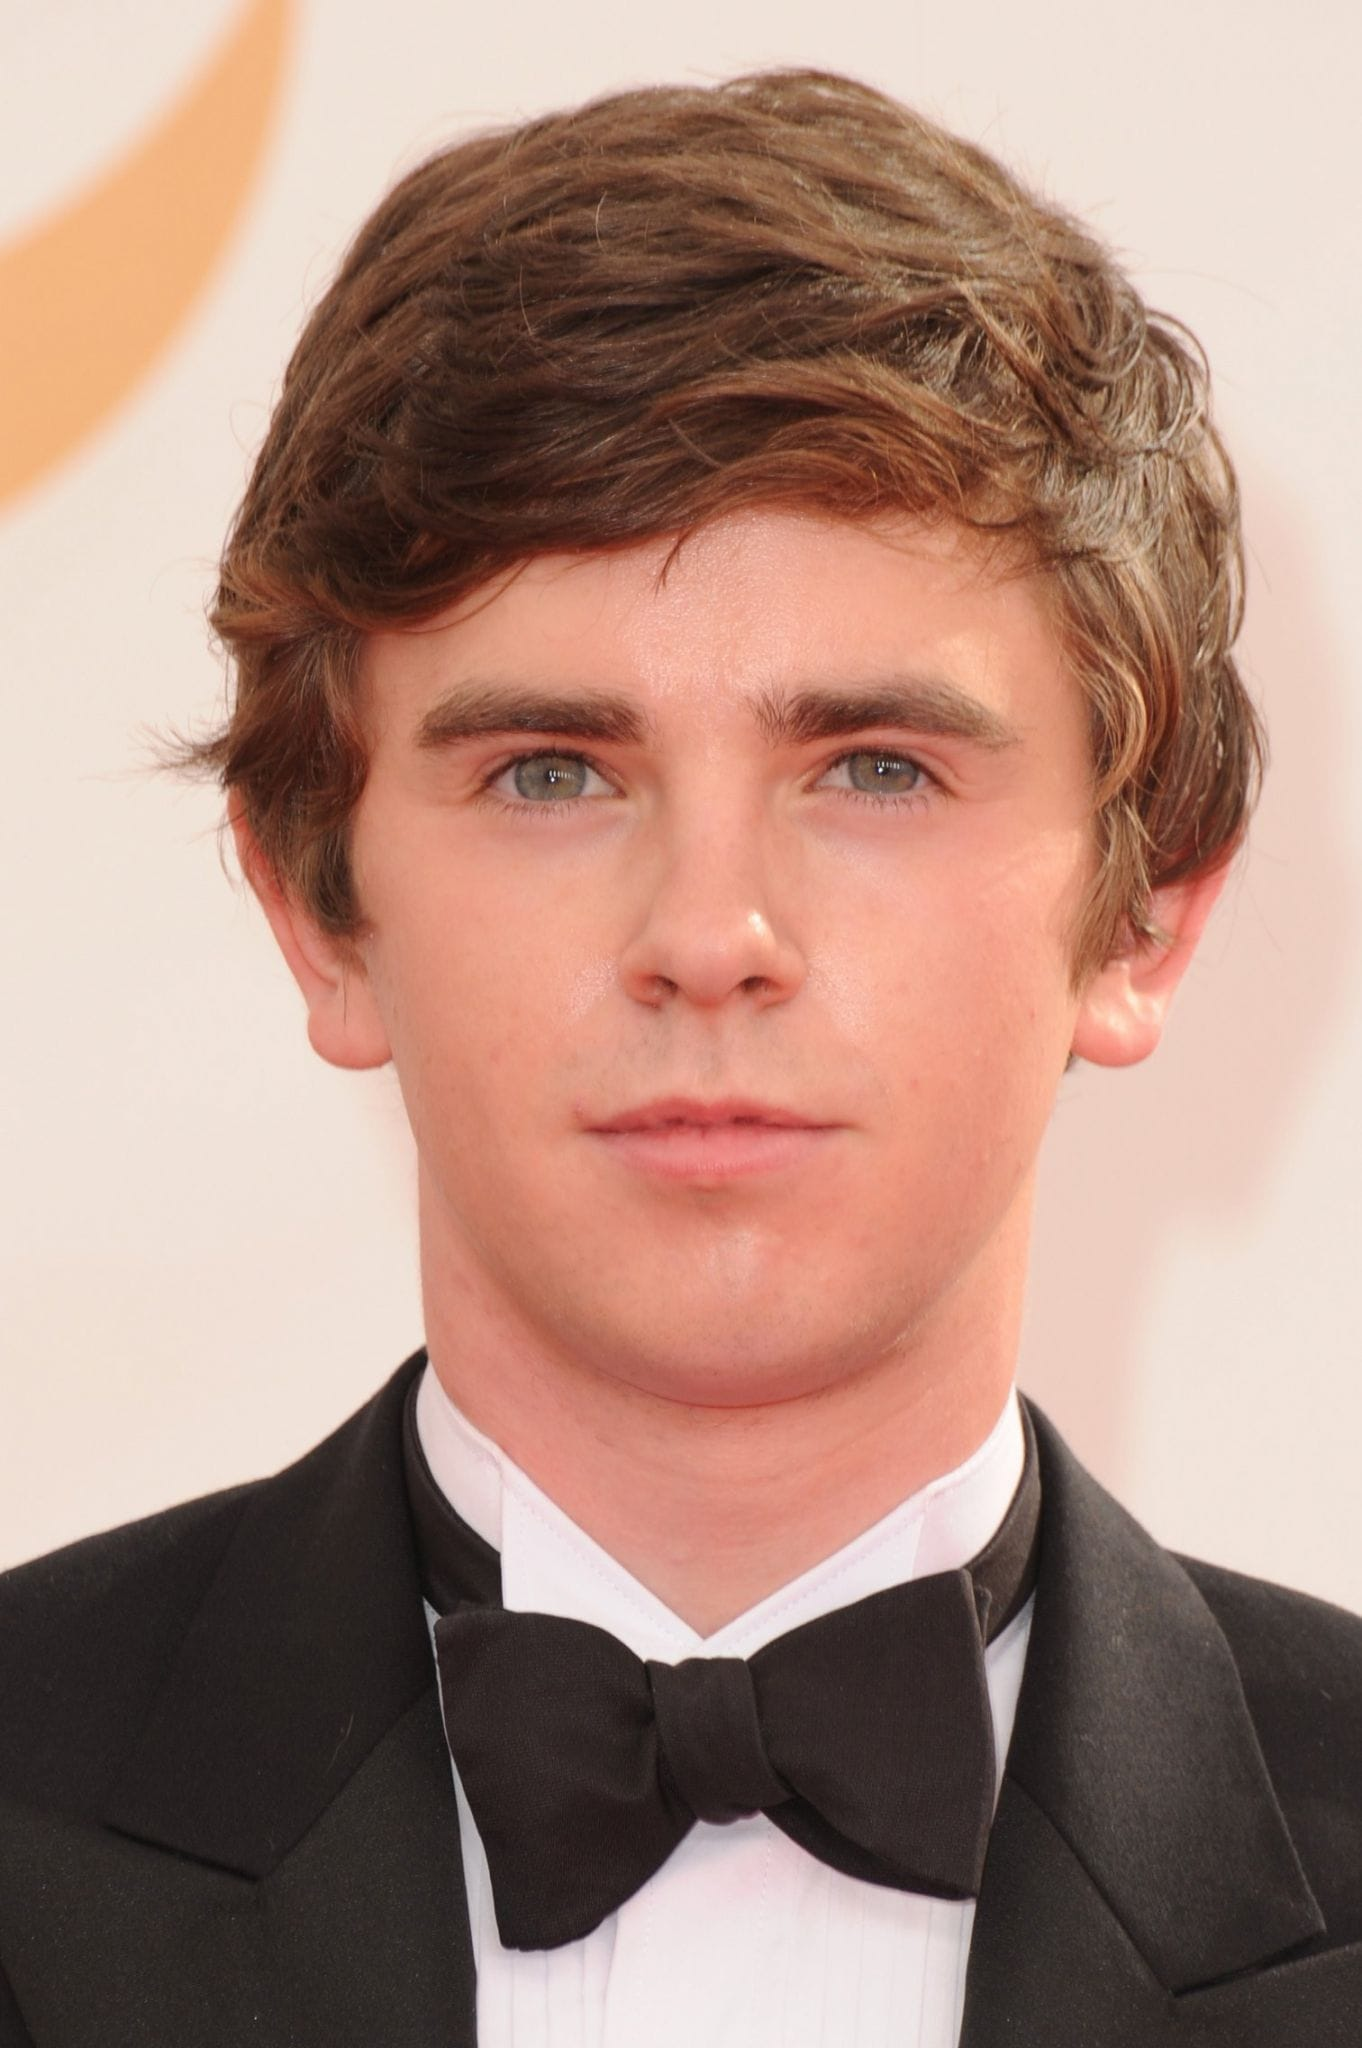 Freddie Highmore Wallpapers hd